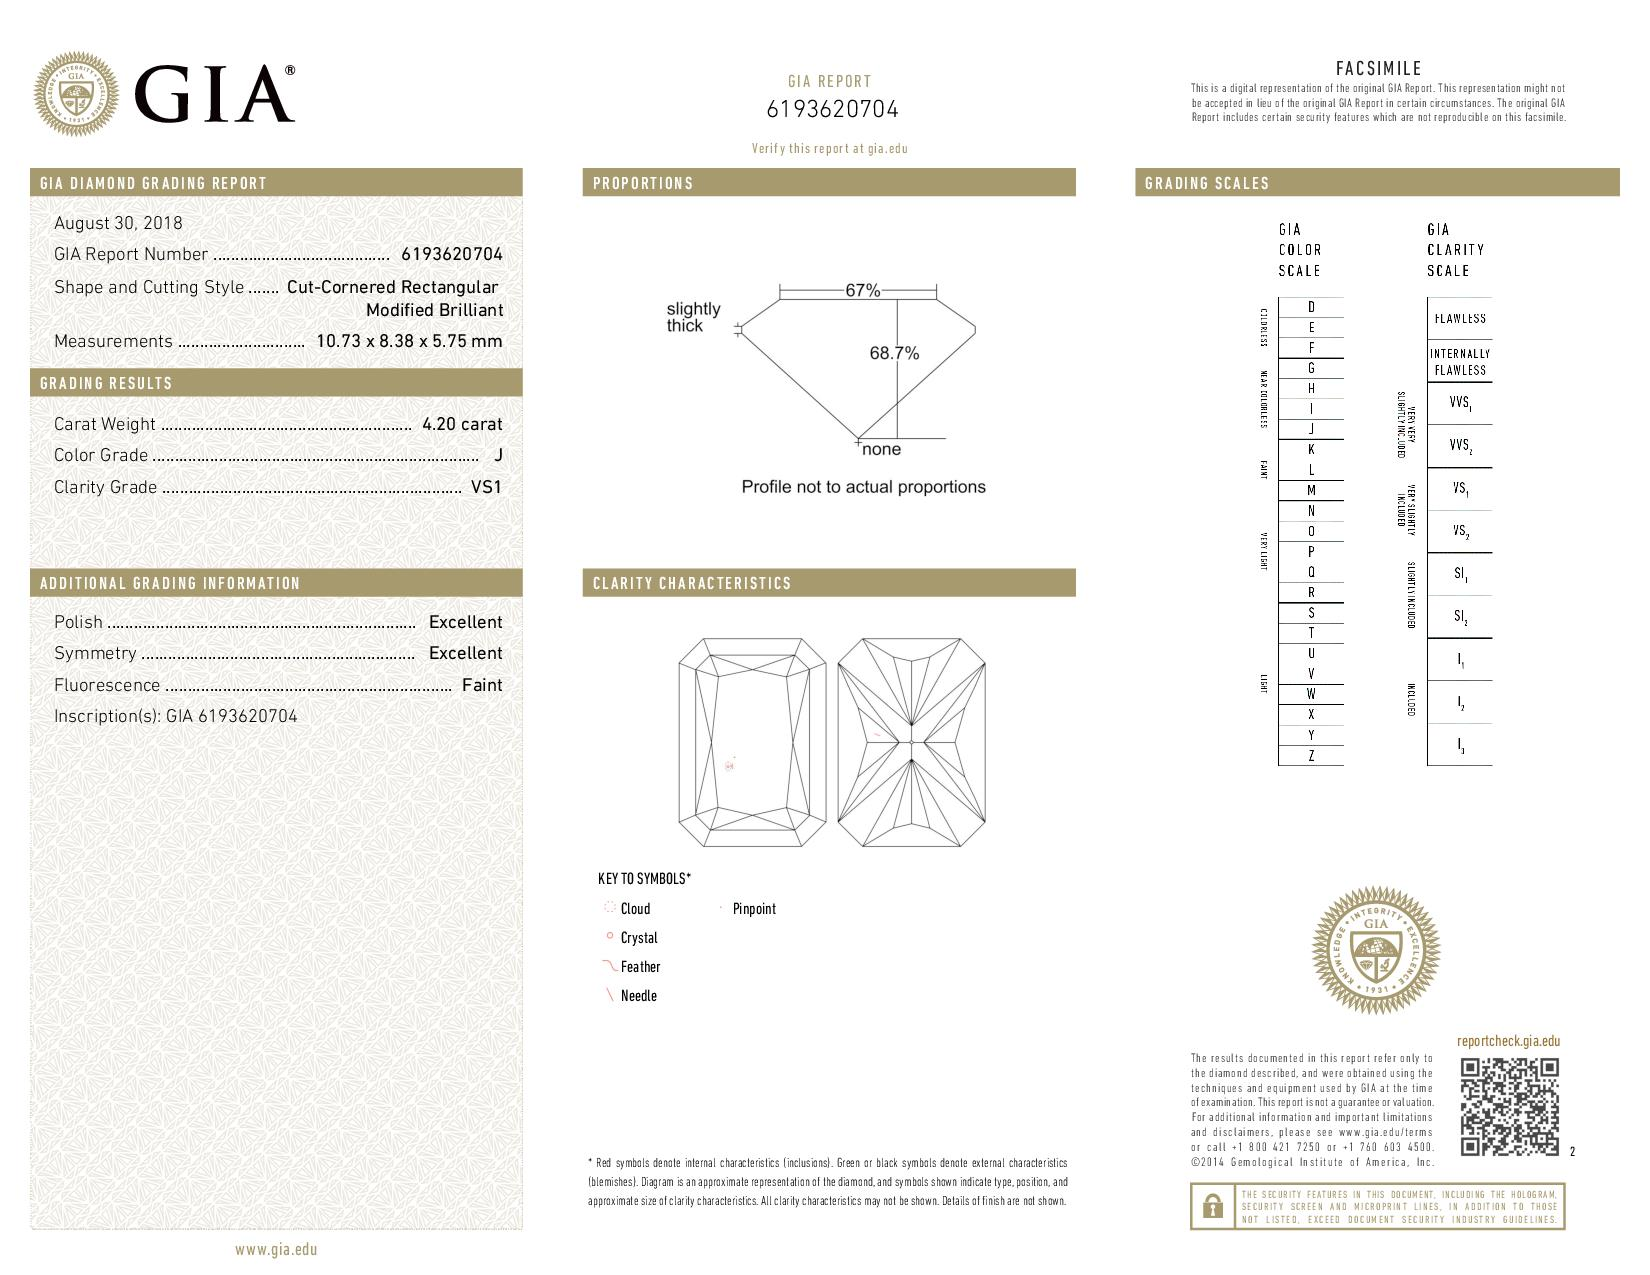 This is a 4.20 carat radiant shape, J color, VS1 clarity natural diamond accompanied by a GIA grading report.